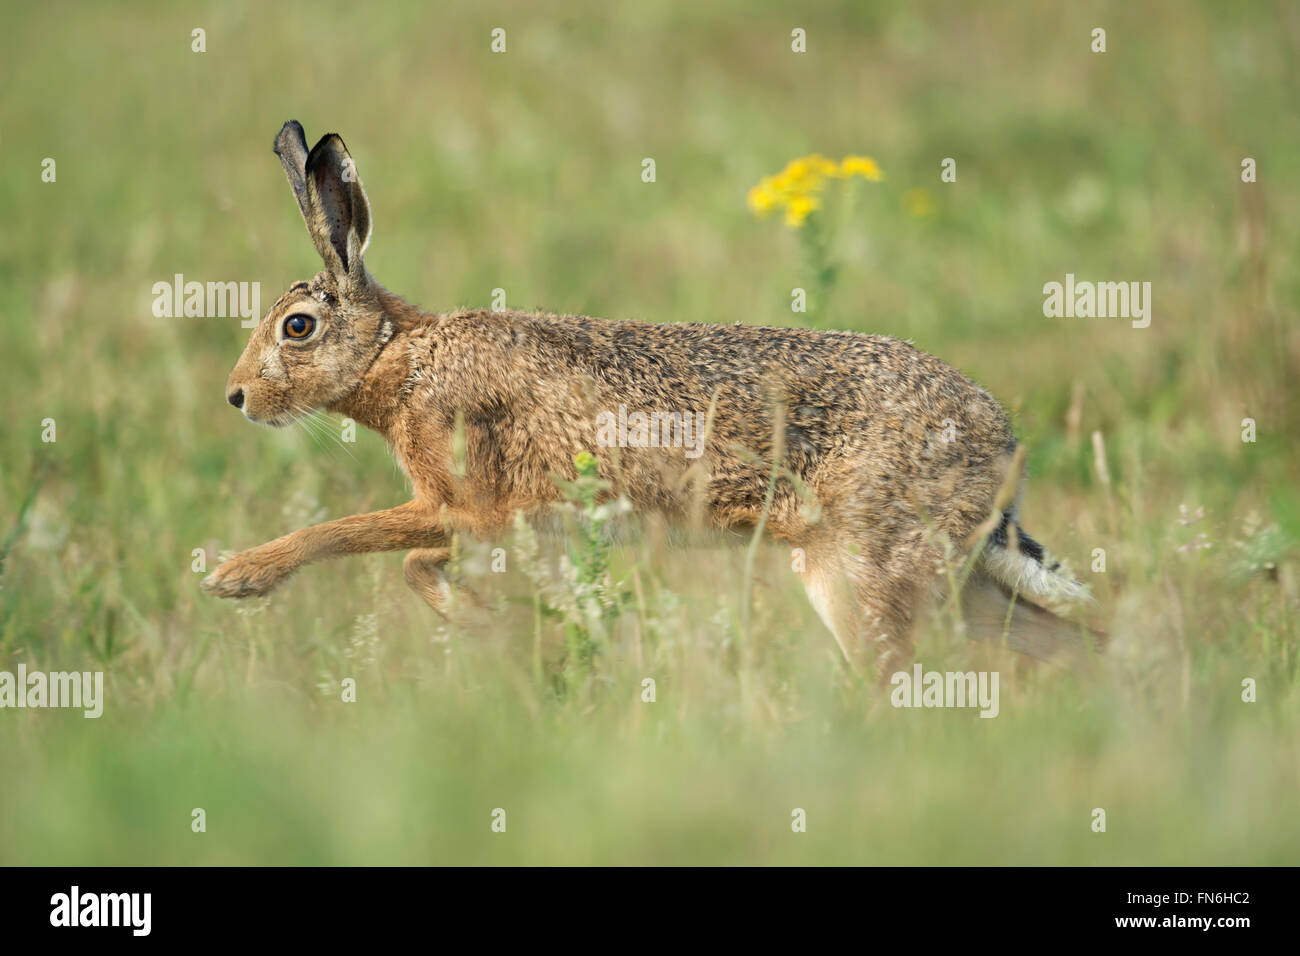 Brown Hare / European Hare / Feldhase ( Lepus europaeus ) running through flowering meadow. - Stock Image